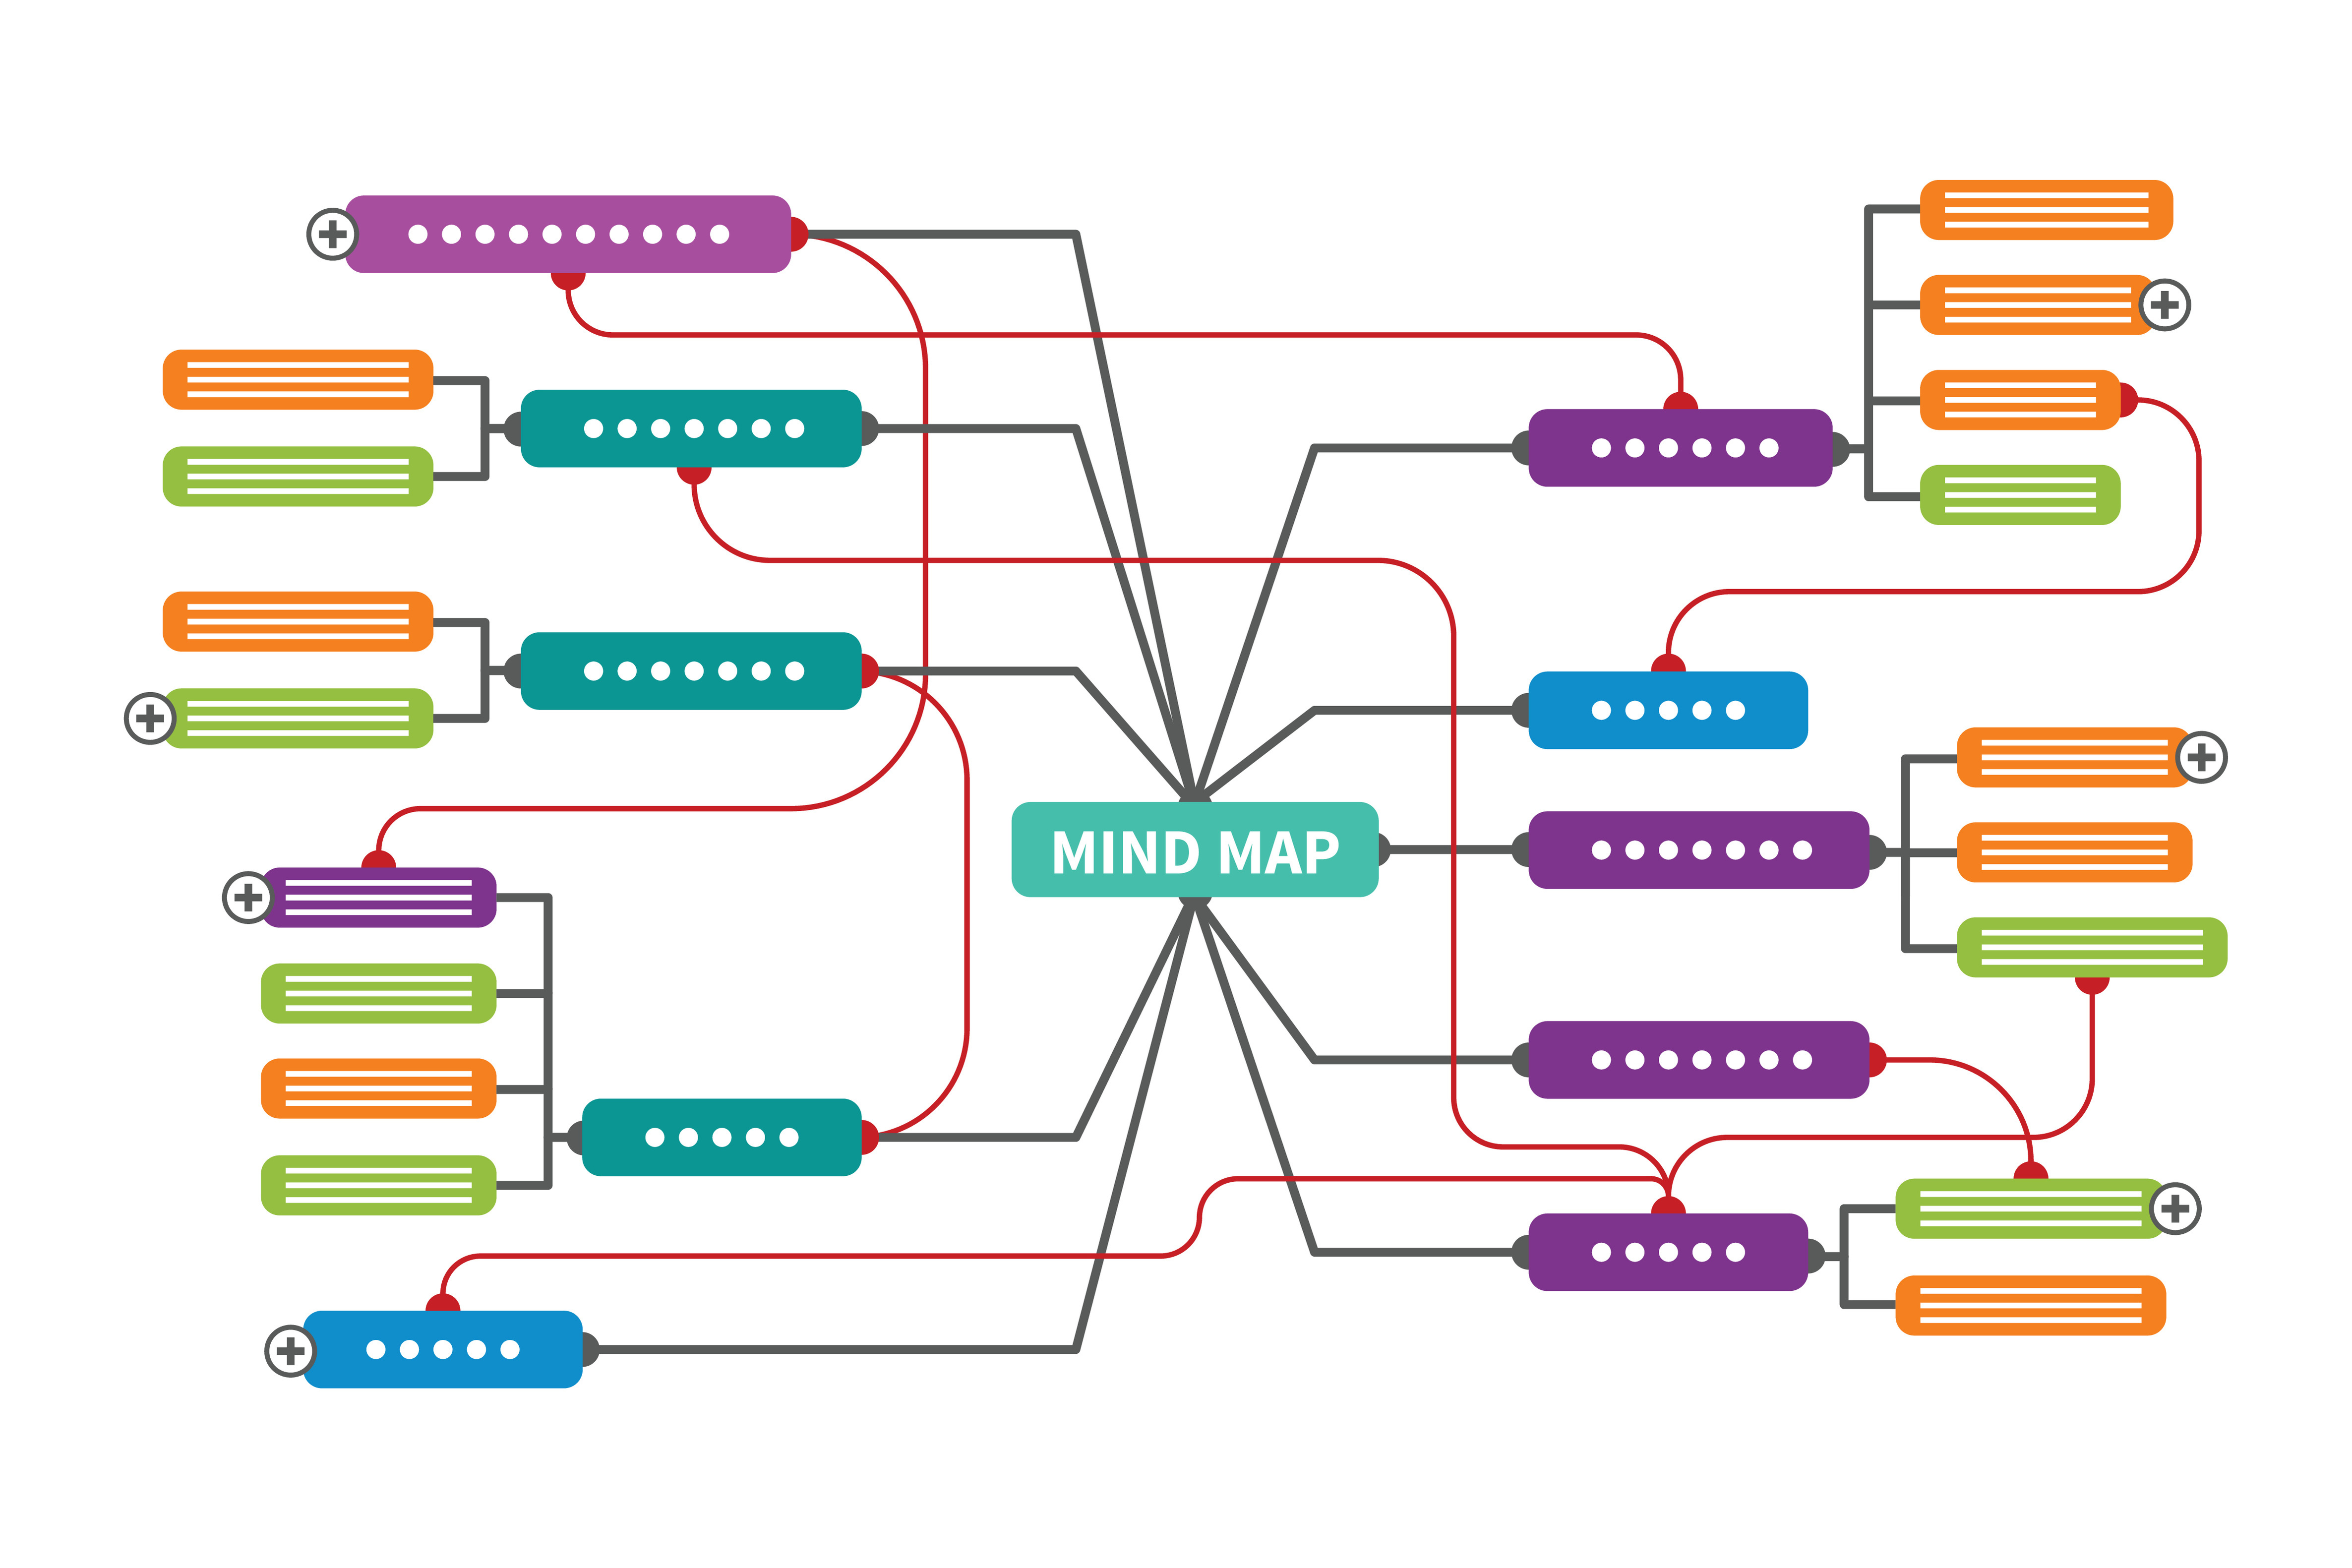 mind map, mind mapping